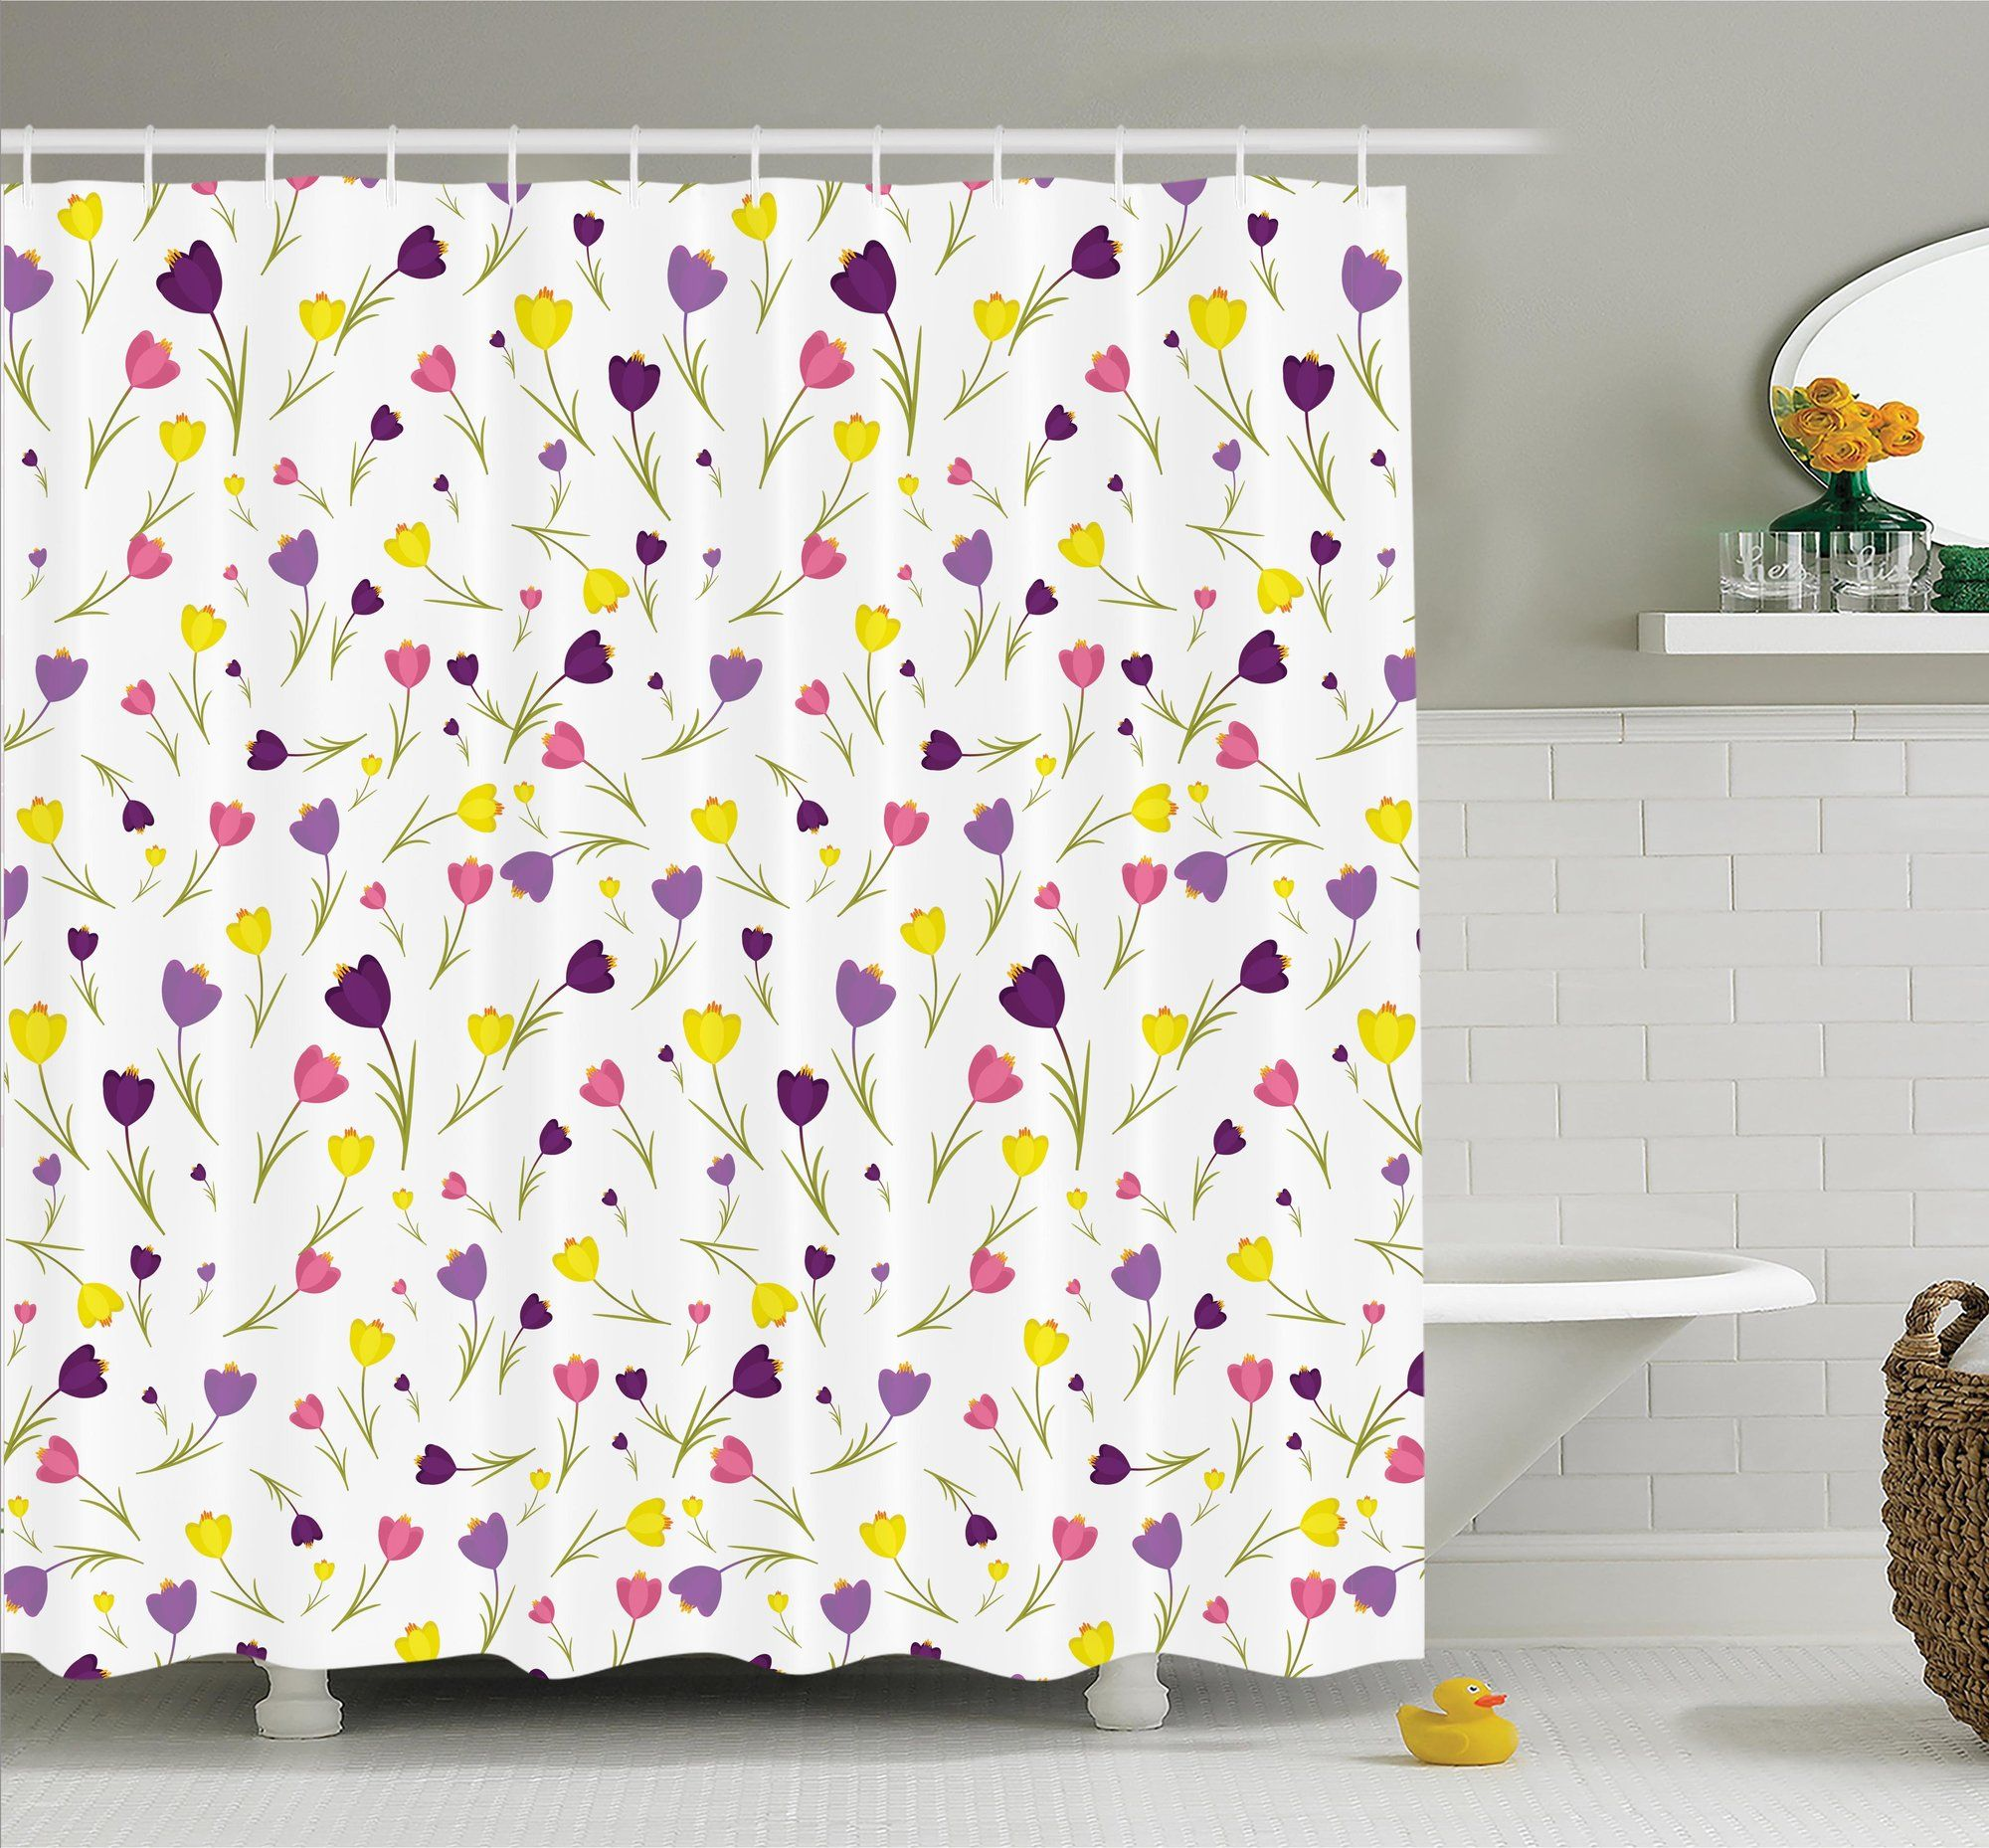 Floral Tulips Spring Romantic Shower Curtain Set Shower Curtain